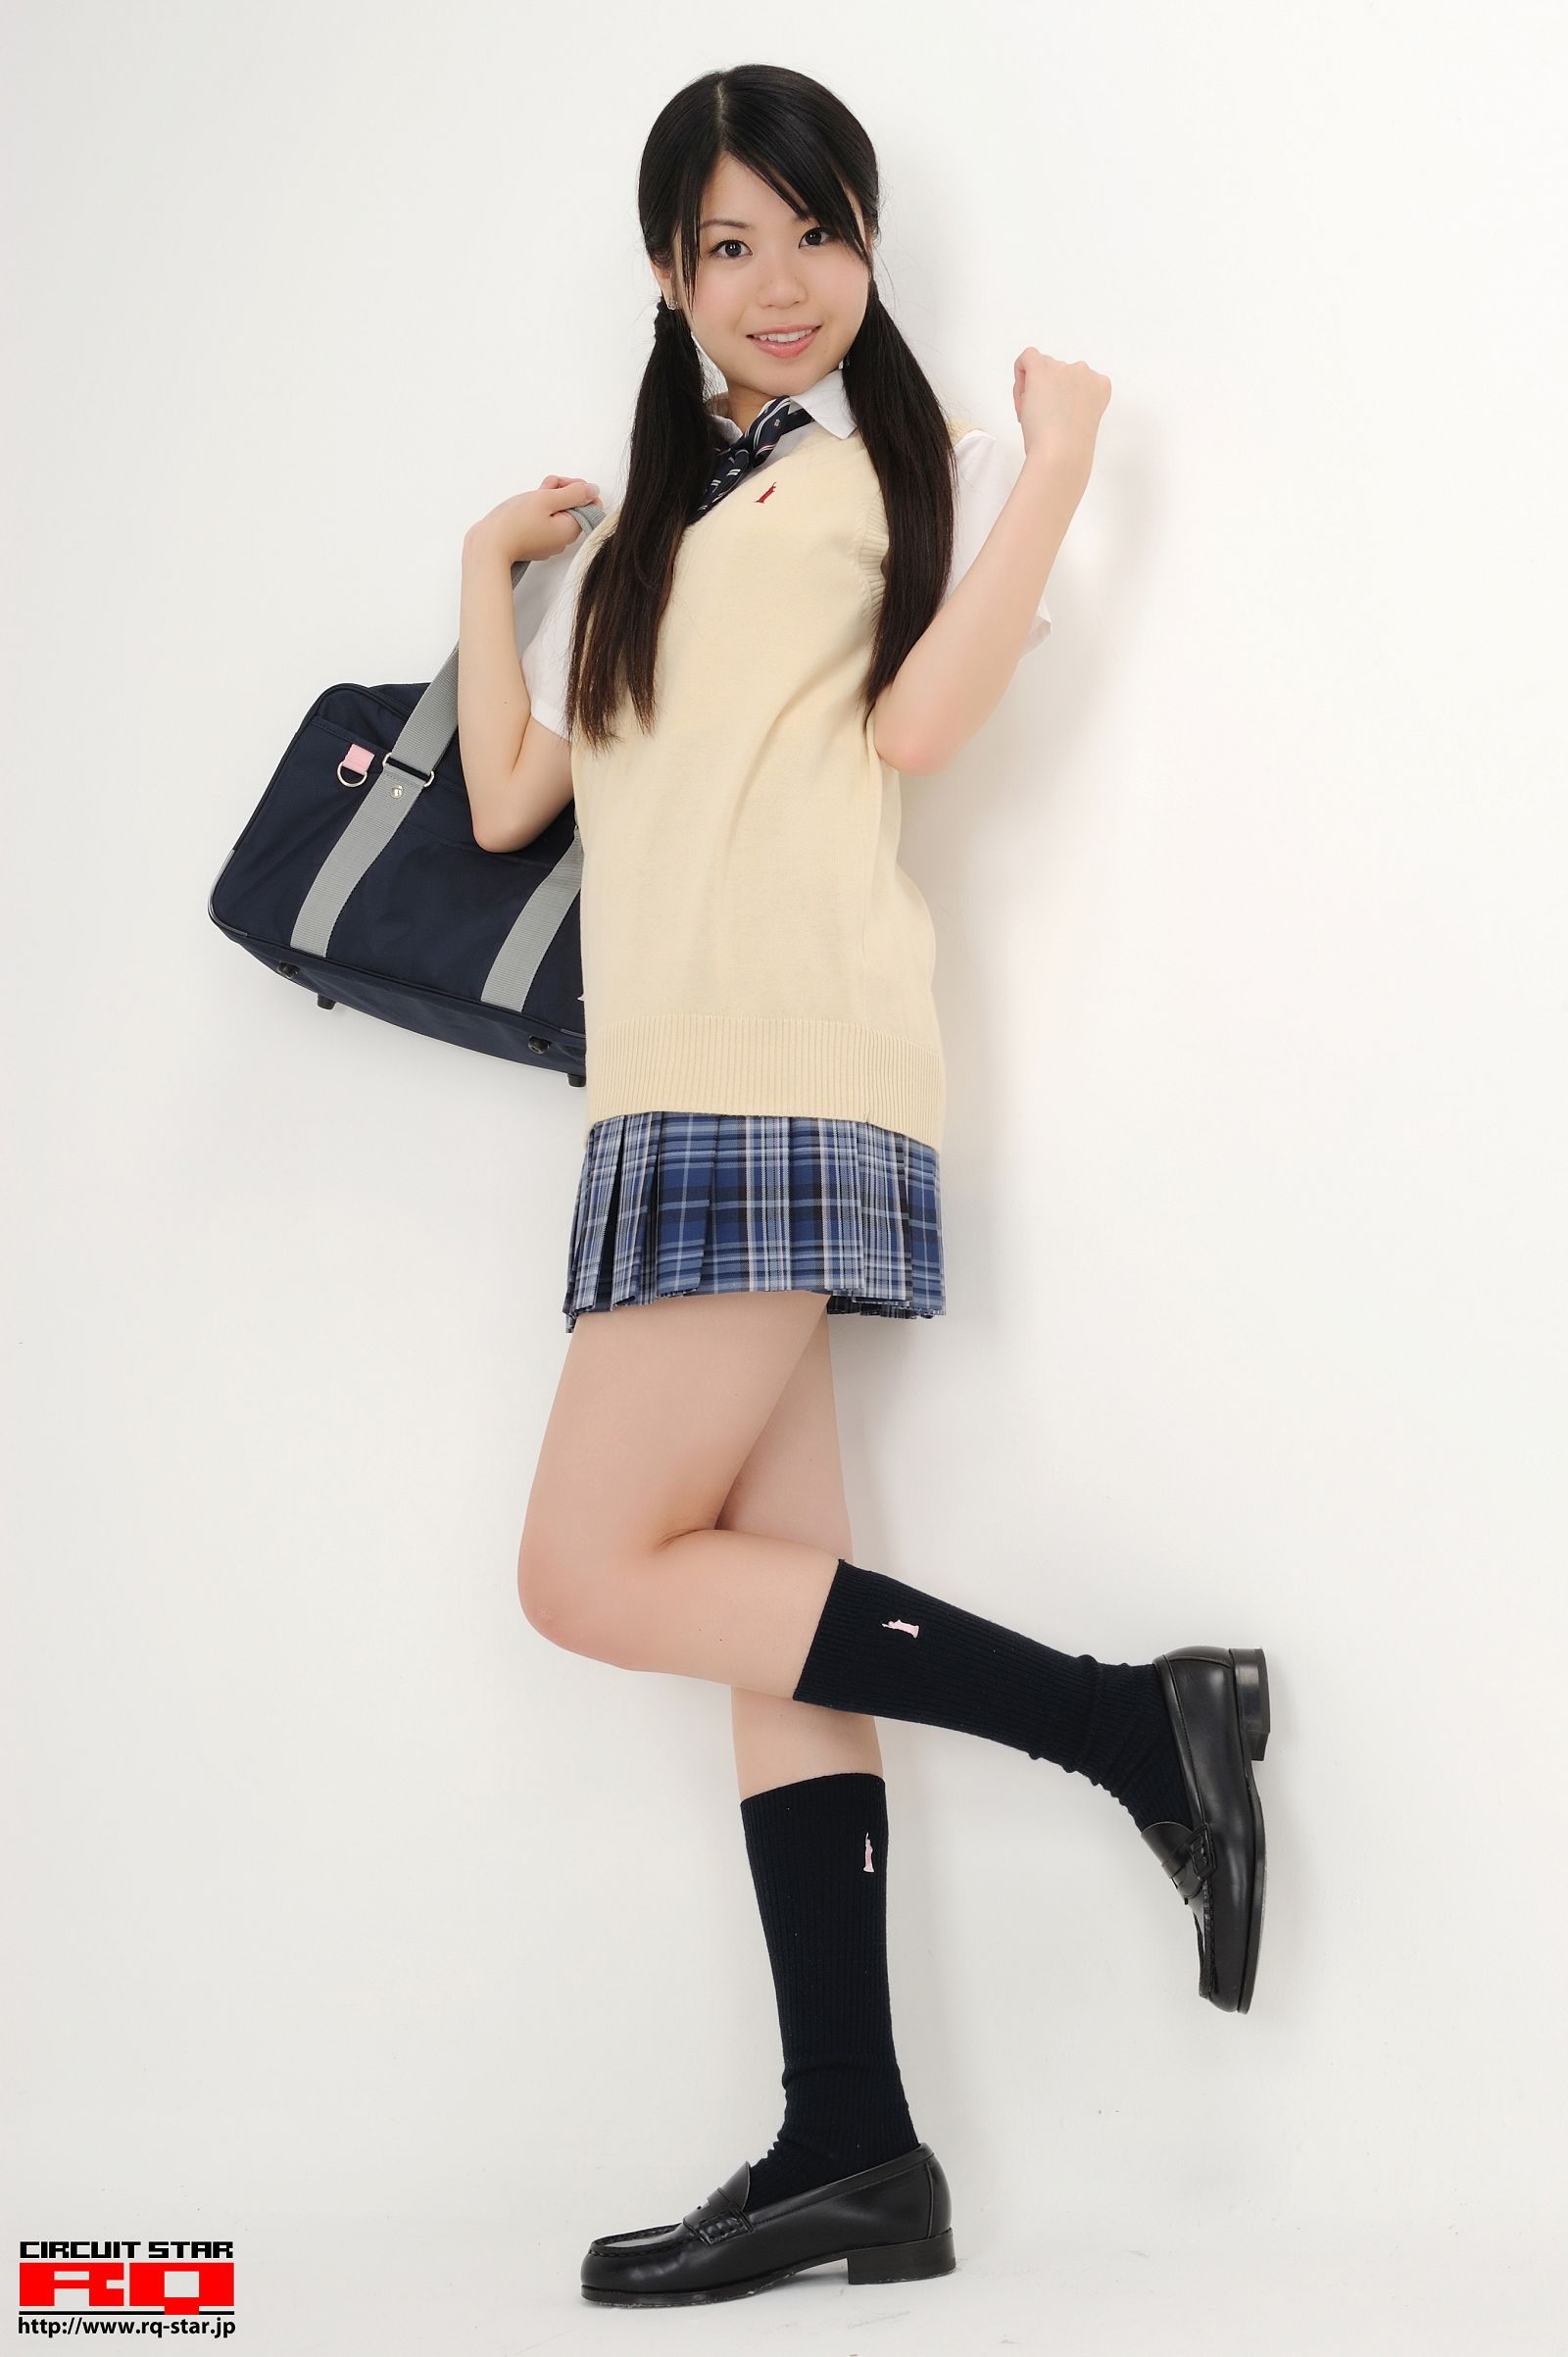 [RQ STAR美女] NO.00436 Fuyumi Ikehara 池原冬実 School Girl[85P] RQ STAR 第4张